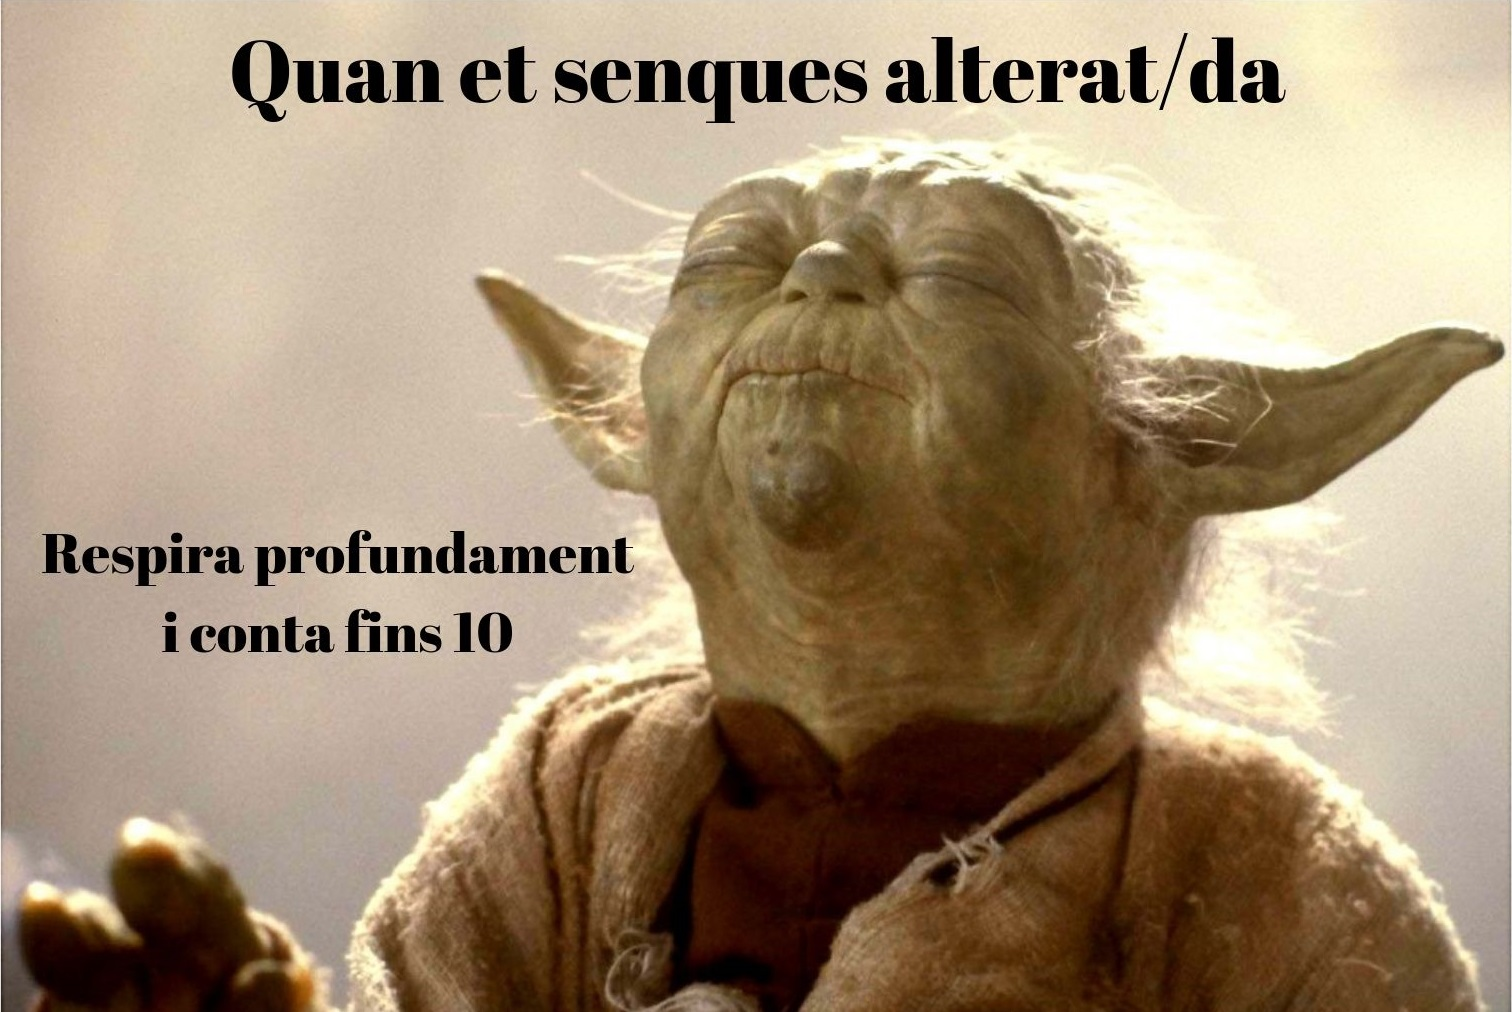 Quan et senques alterat_da